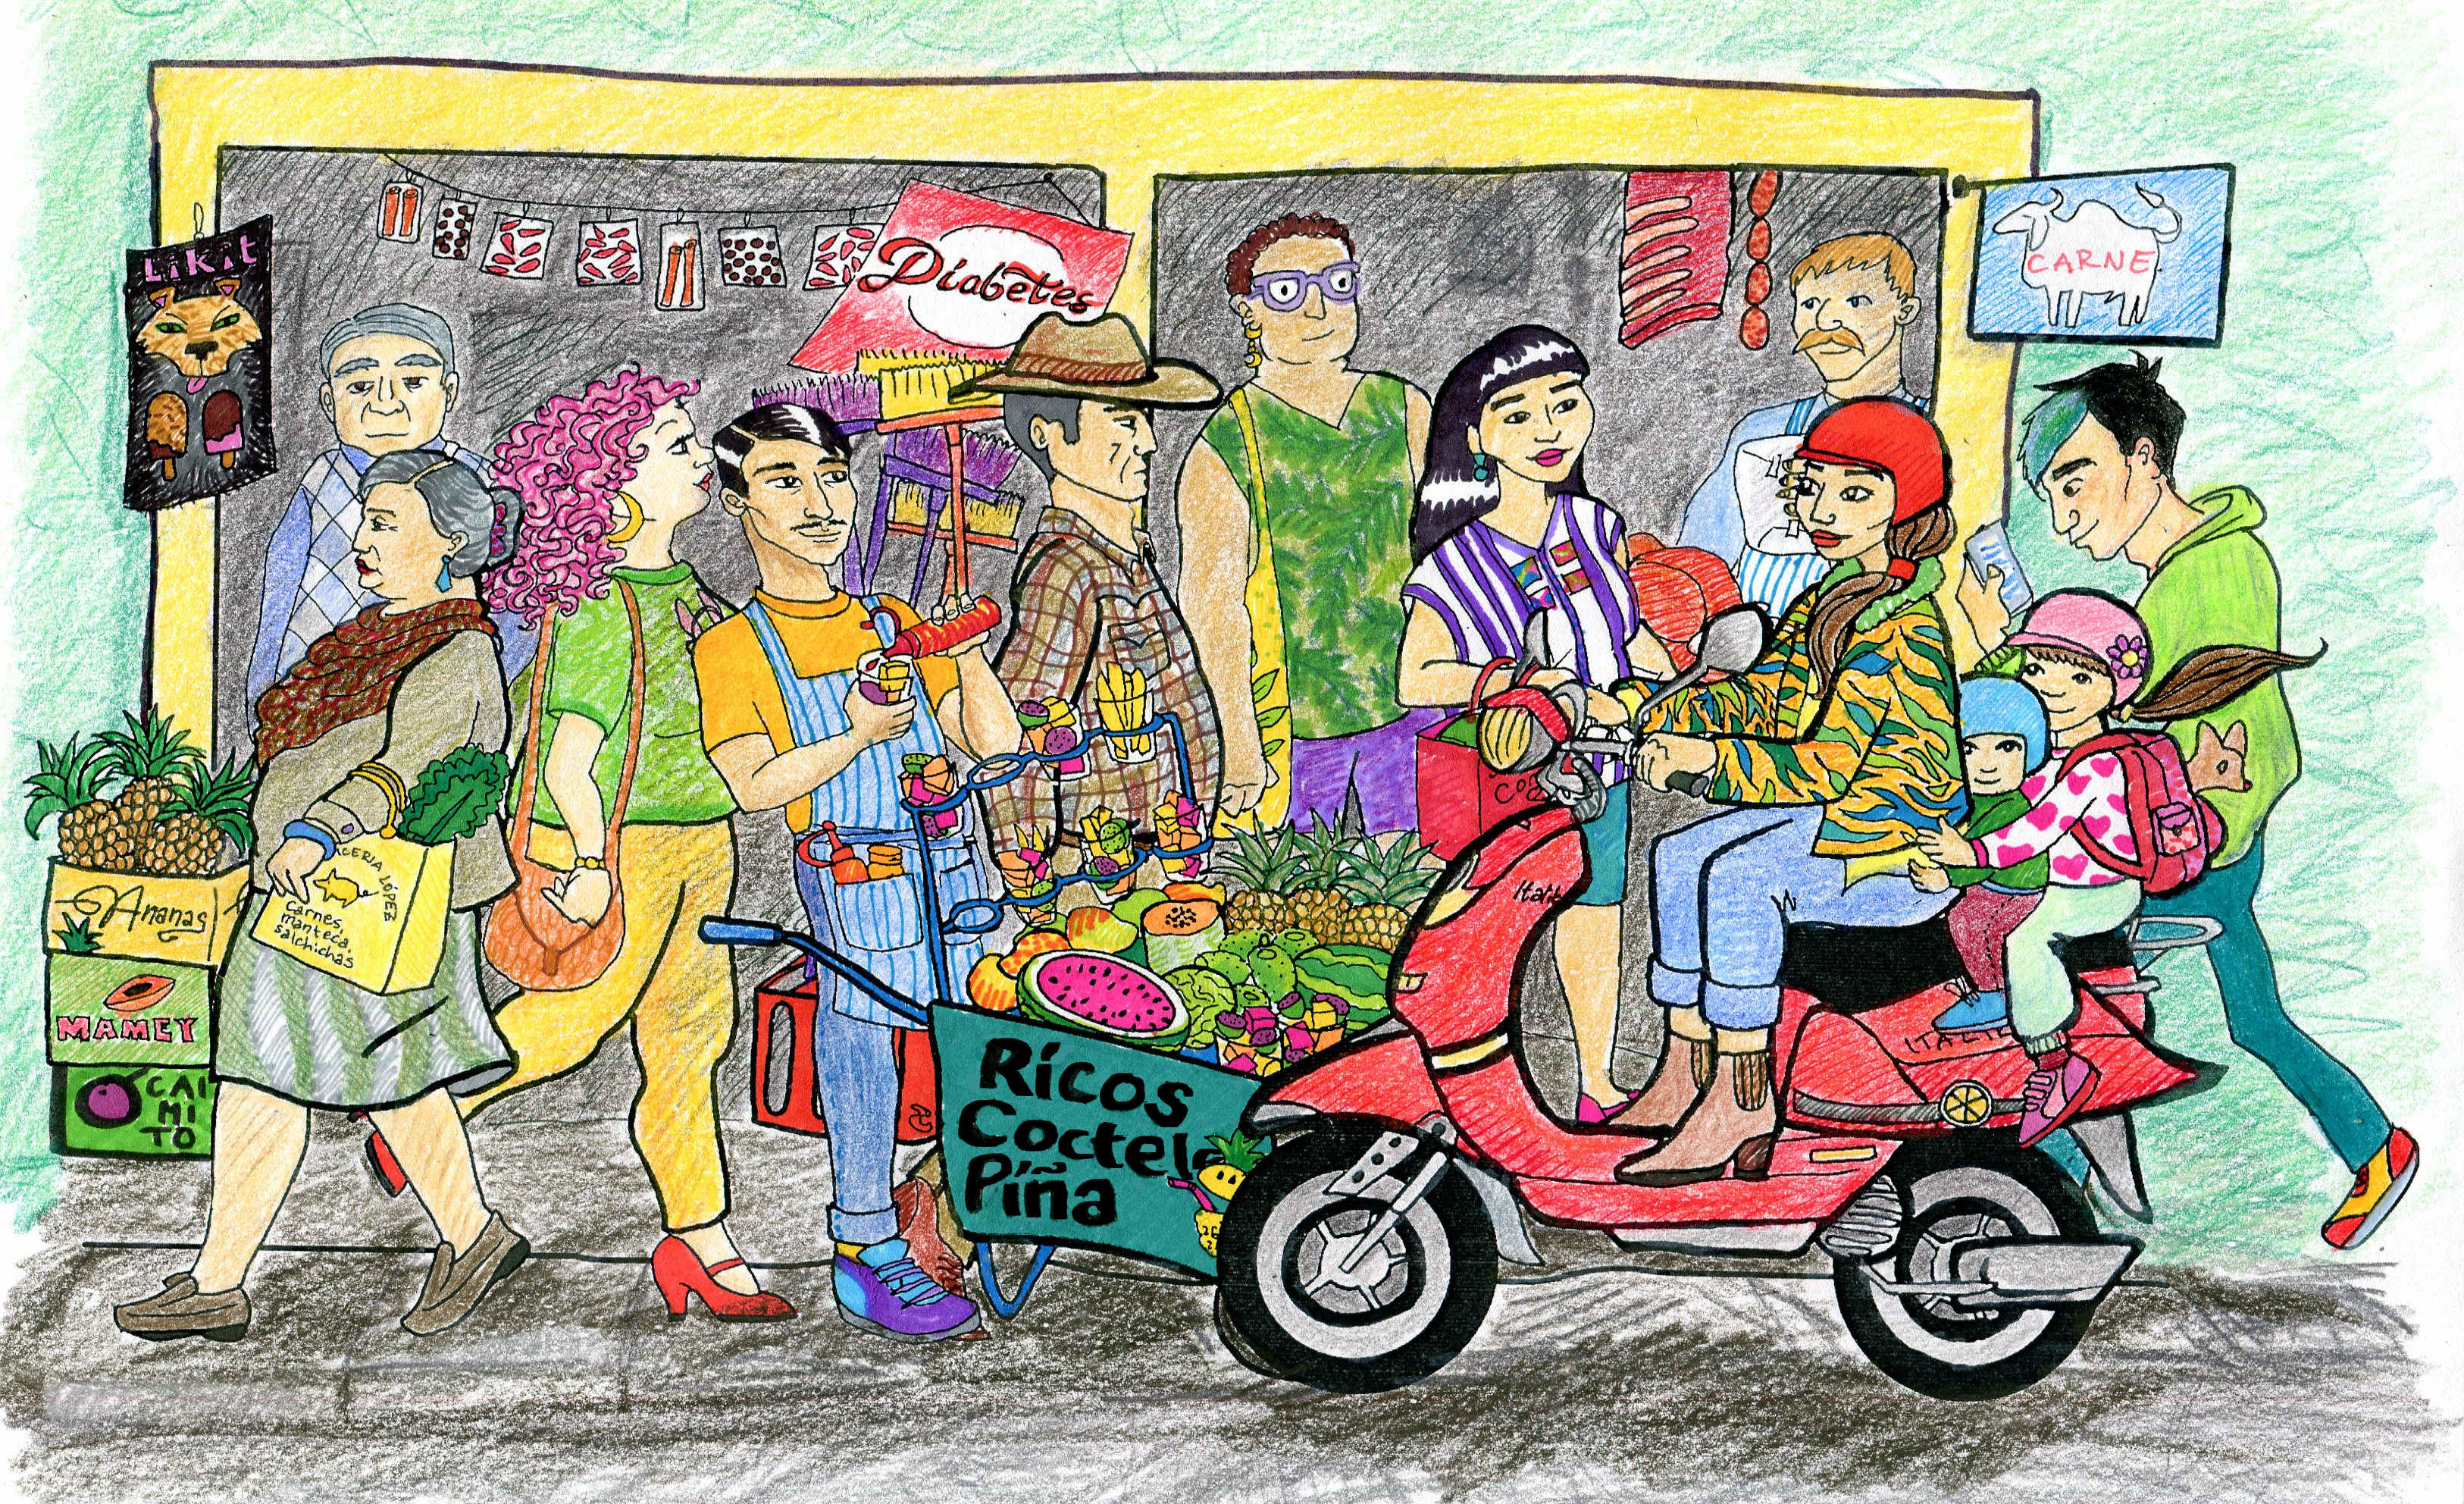 #SancrisEnColores, Mexico, street food, fruit, illustration